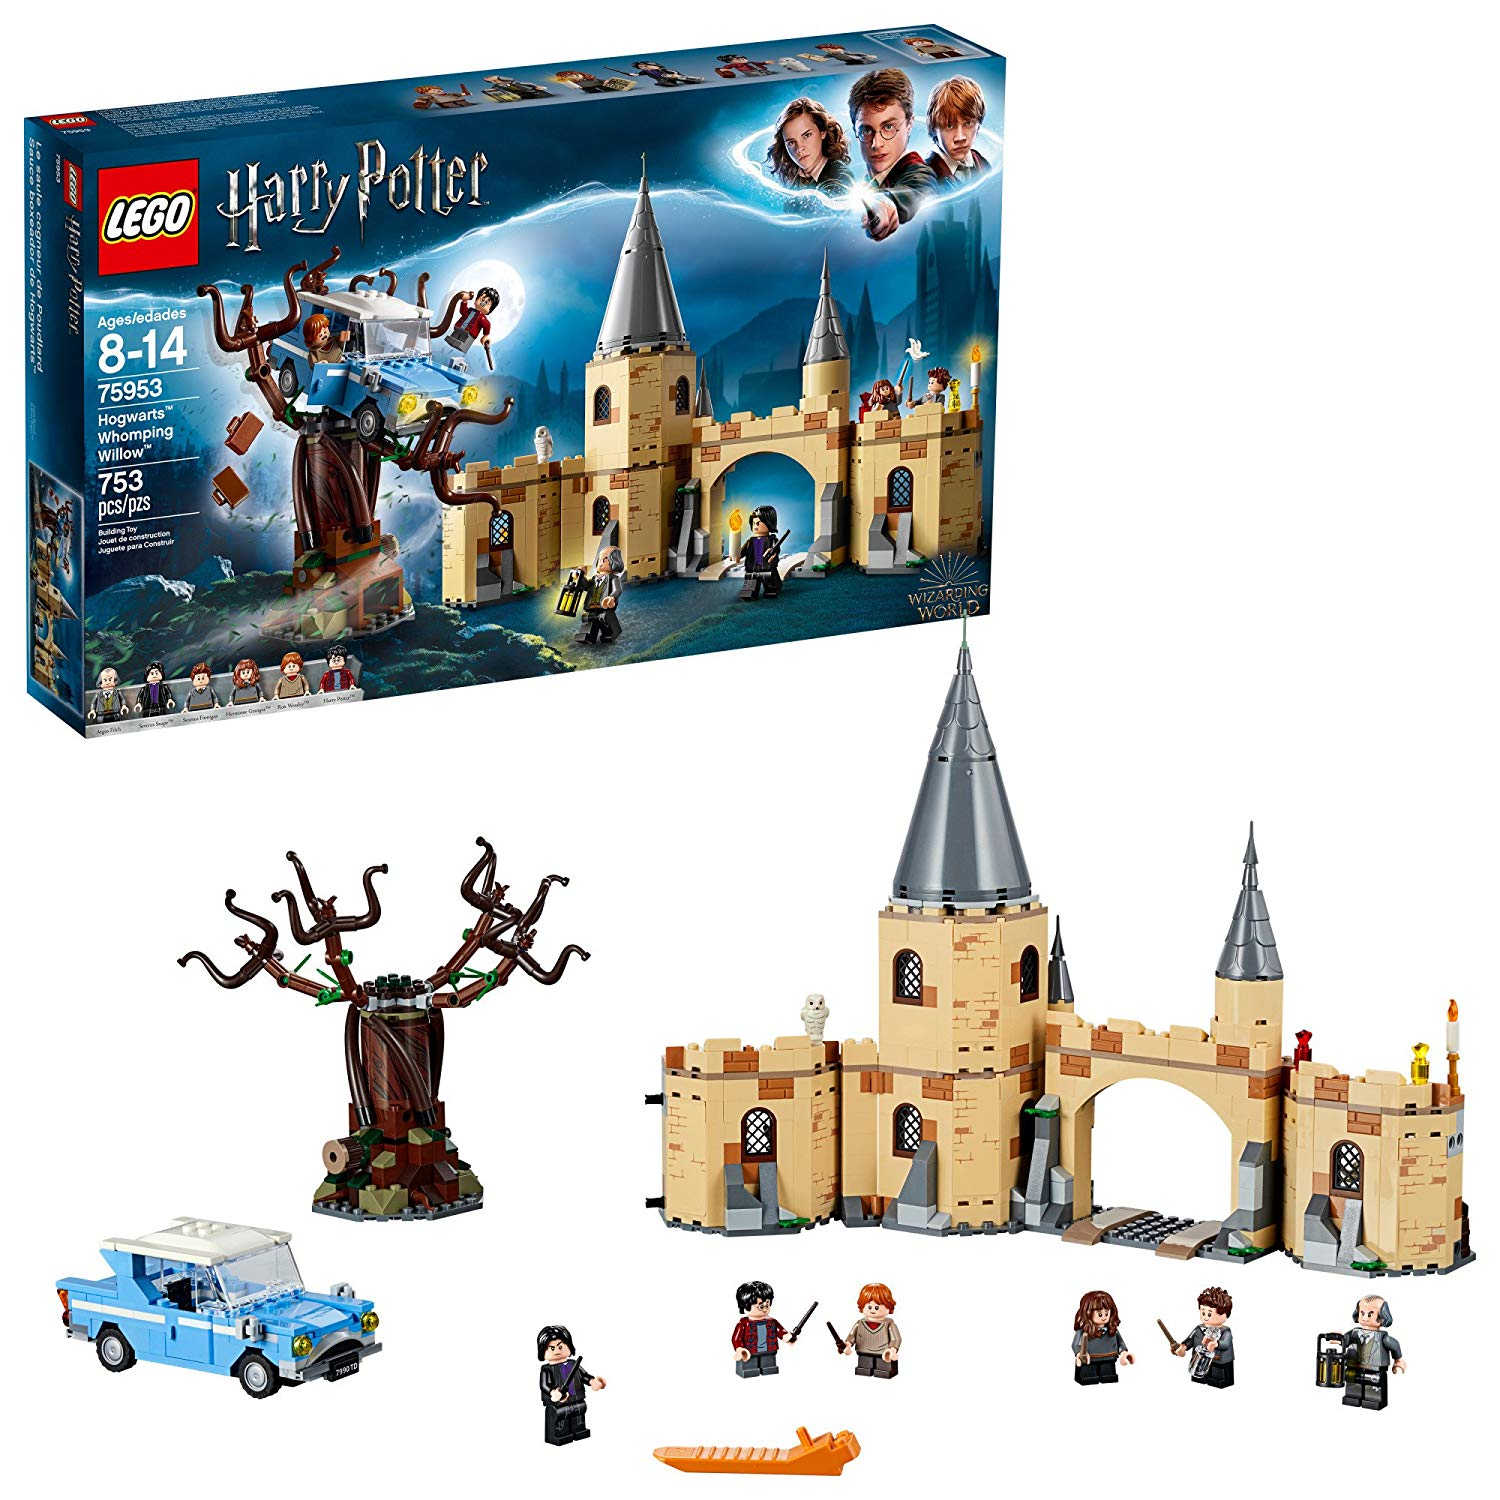 Whomping Willow Lego Set